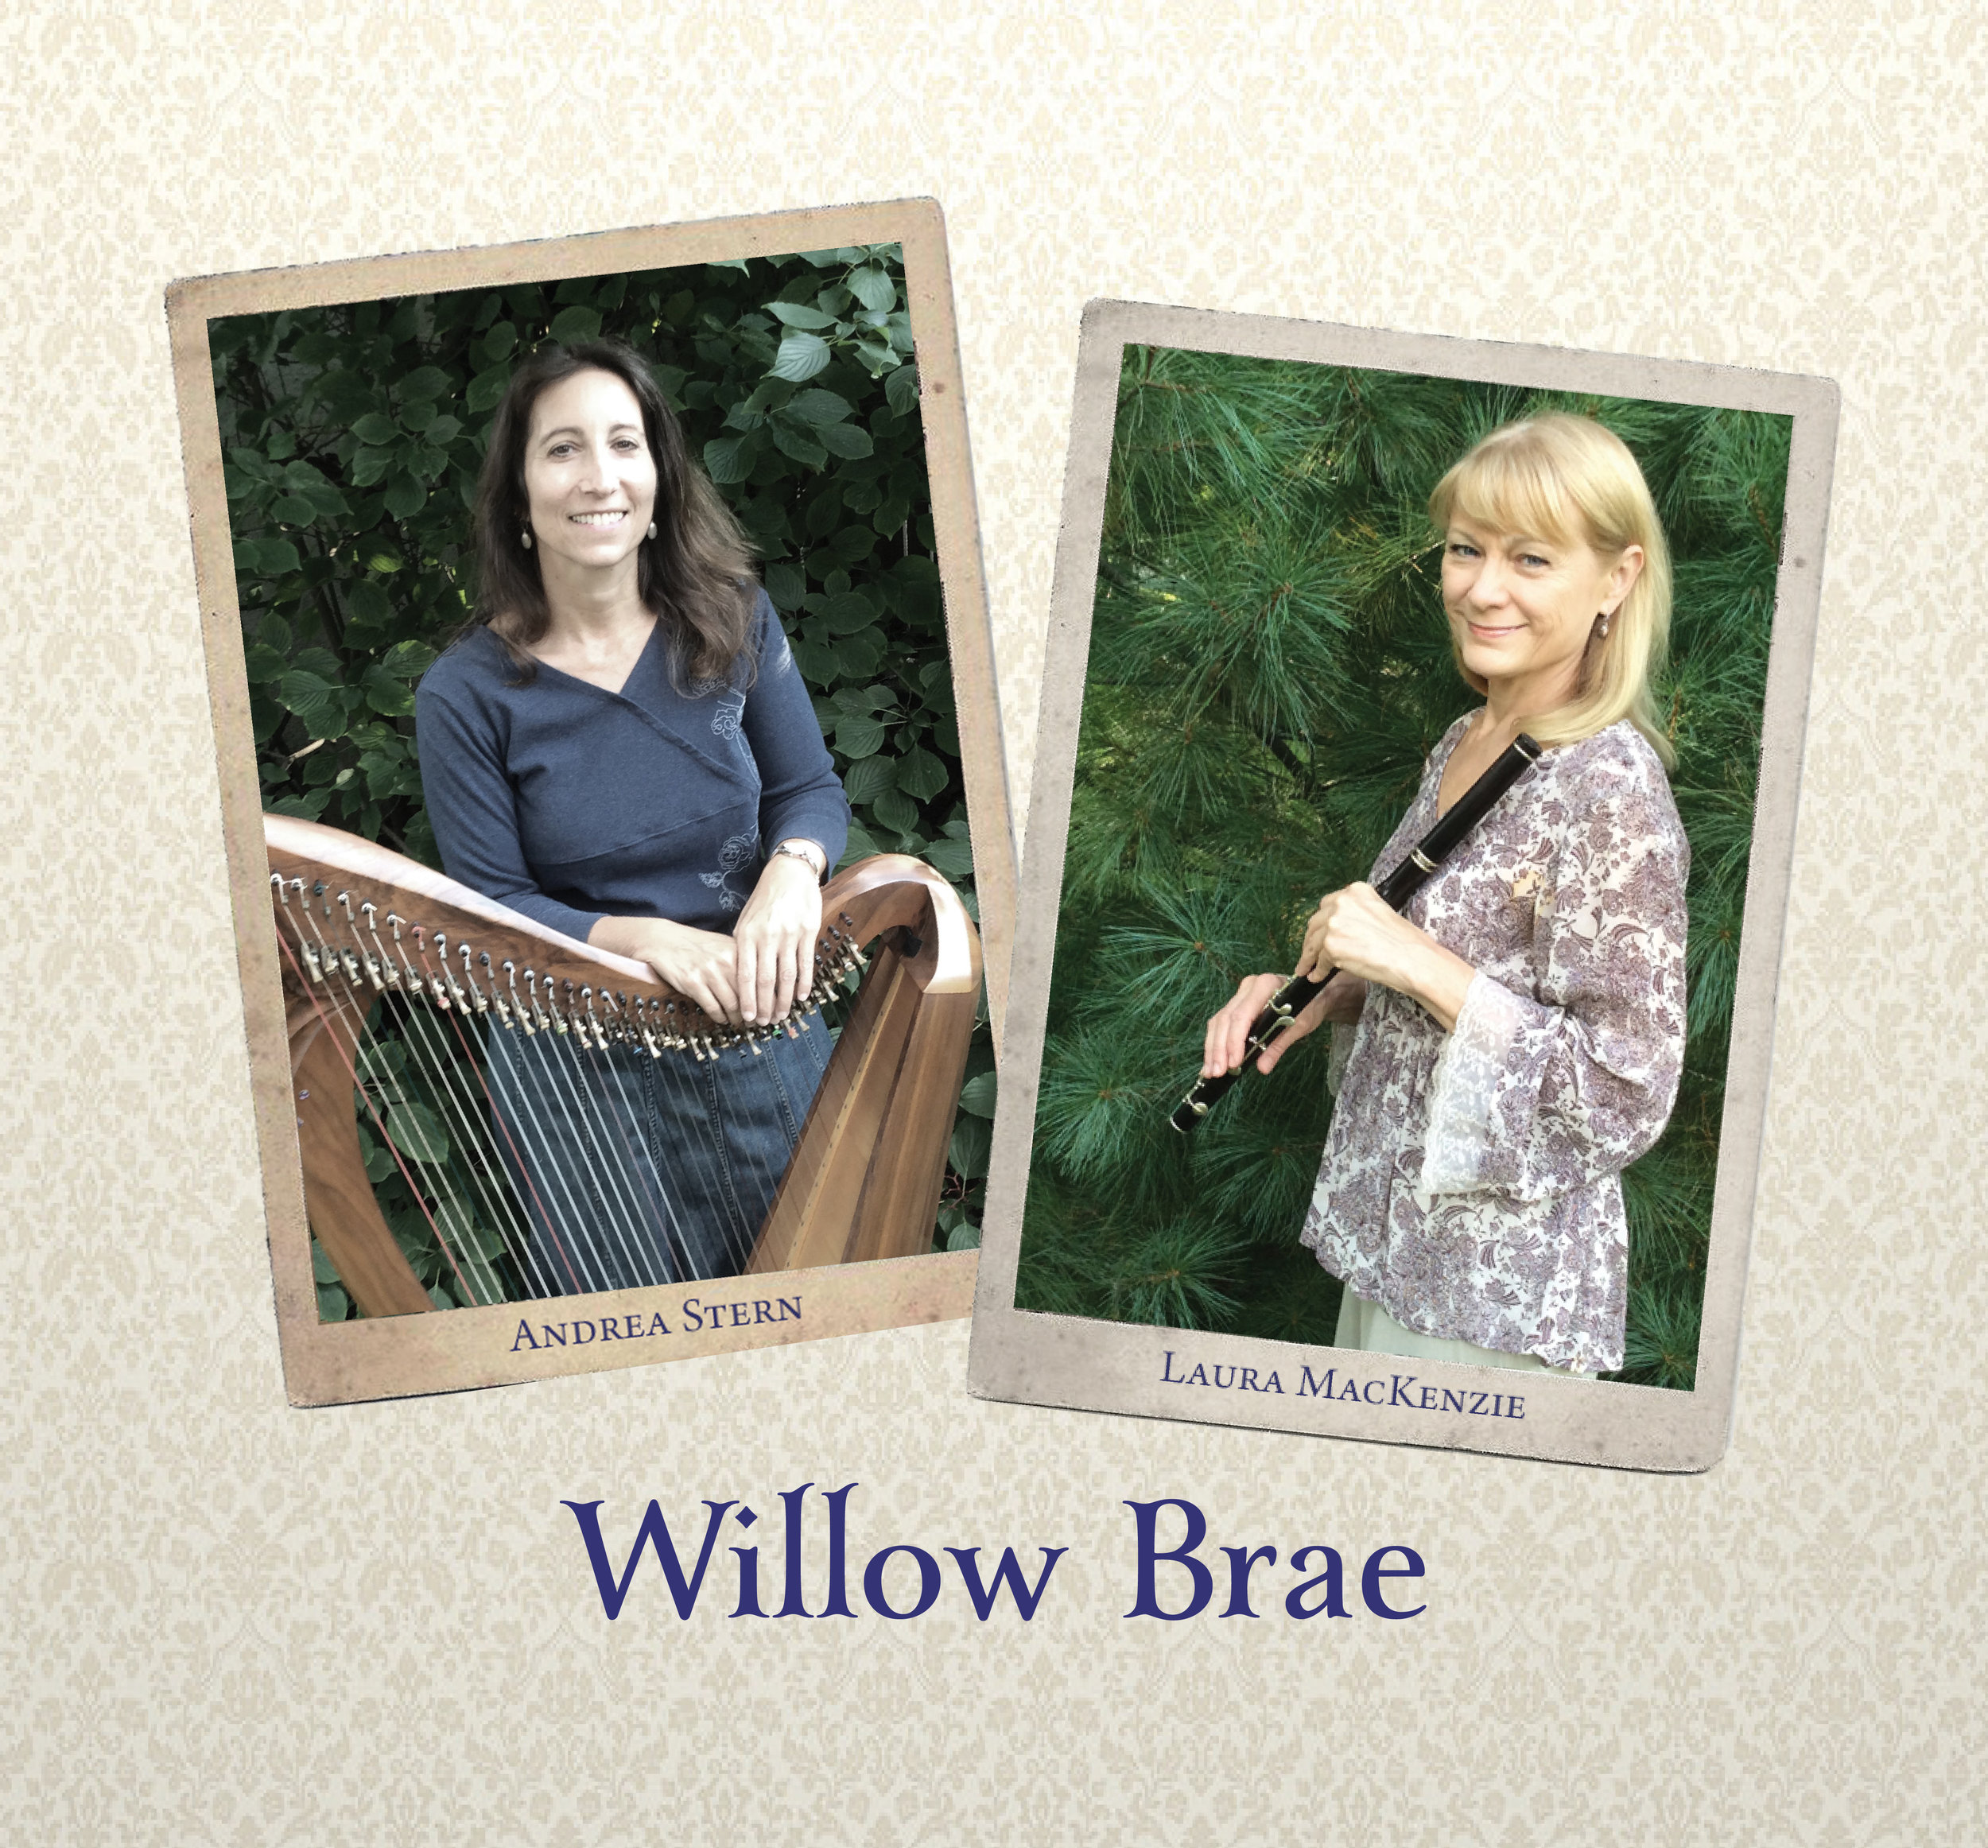 Willow Brae - Andrea Stern and Laura MacKenzie